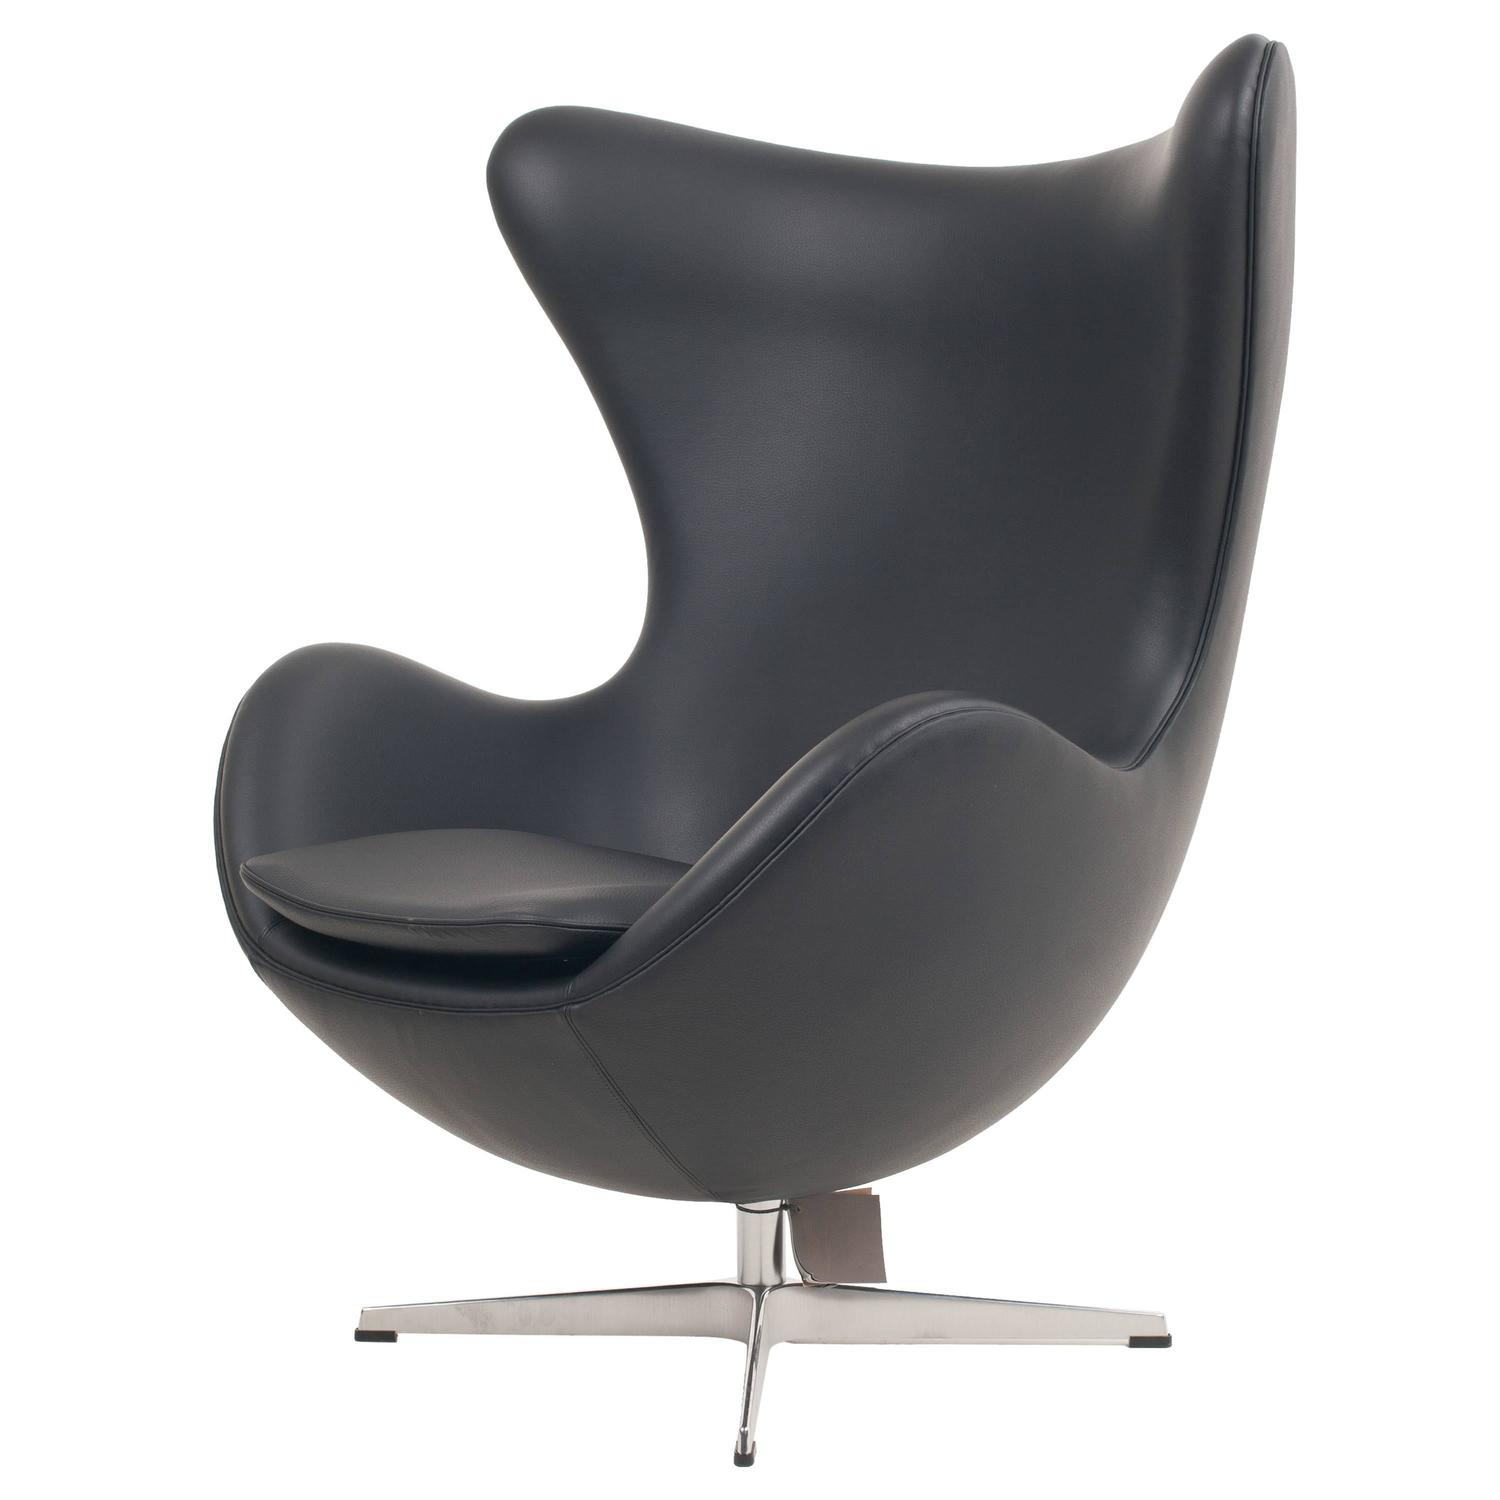 Arne jacobsen egg chair white - Genuine Arne Jacobsen Egg Chair Black Leather Fritz Hansen At 1stdibs